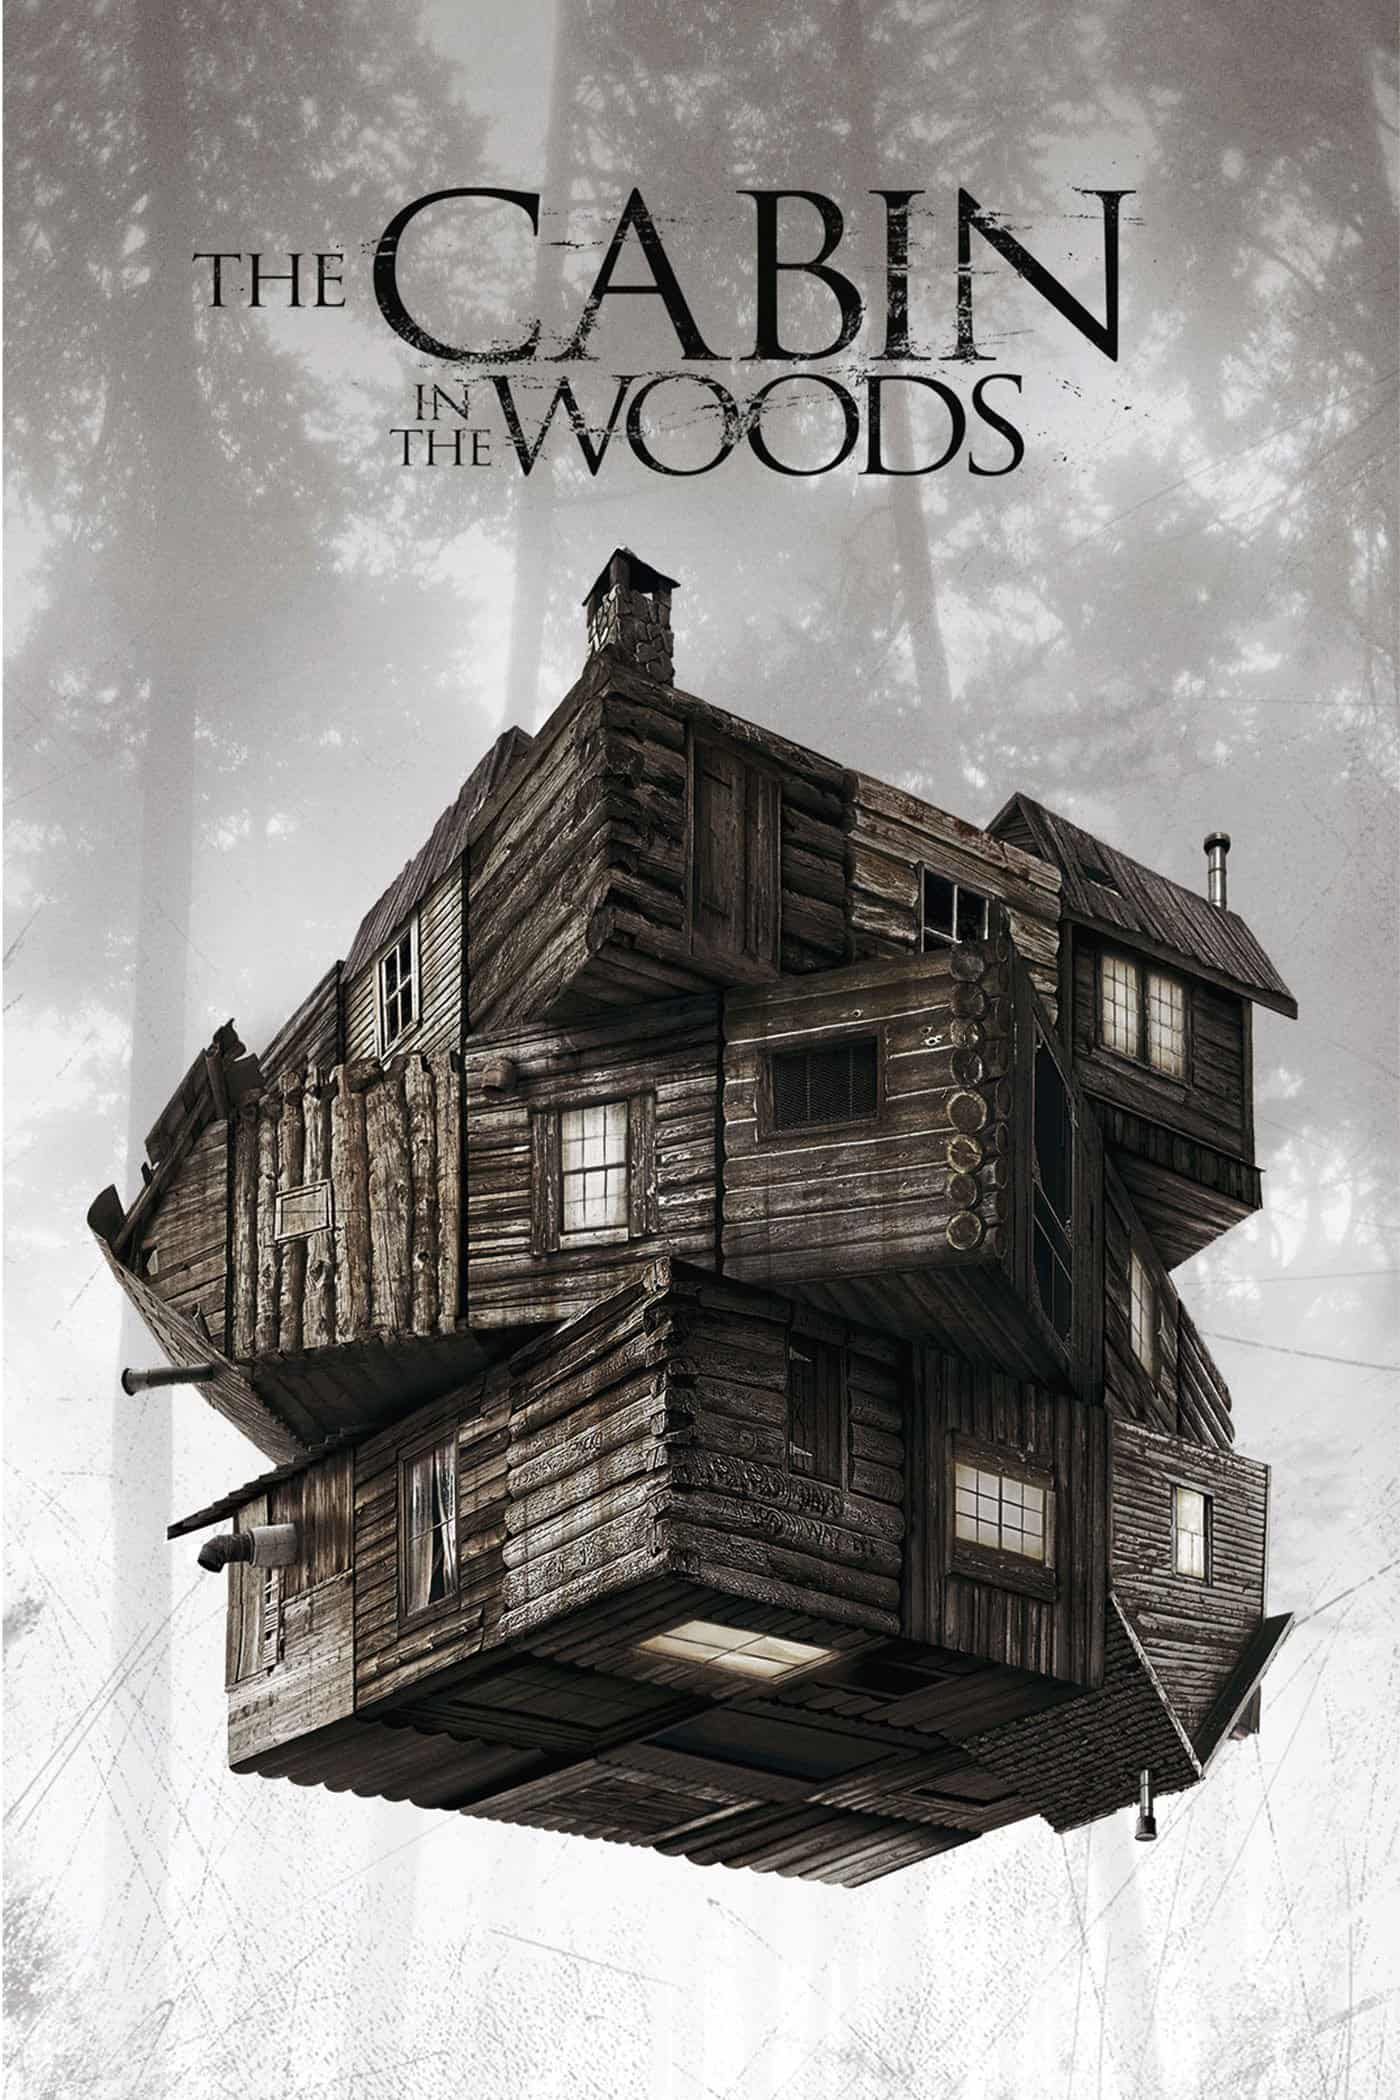 The Cabin in the Woods, 2011